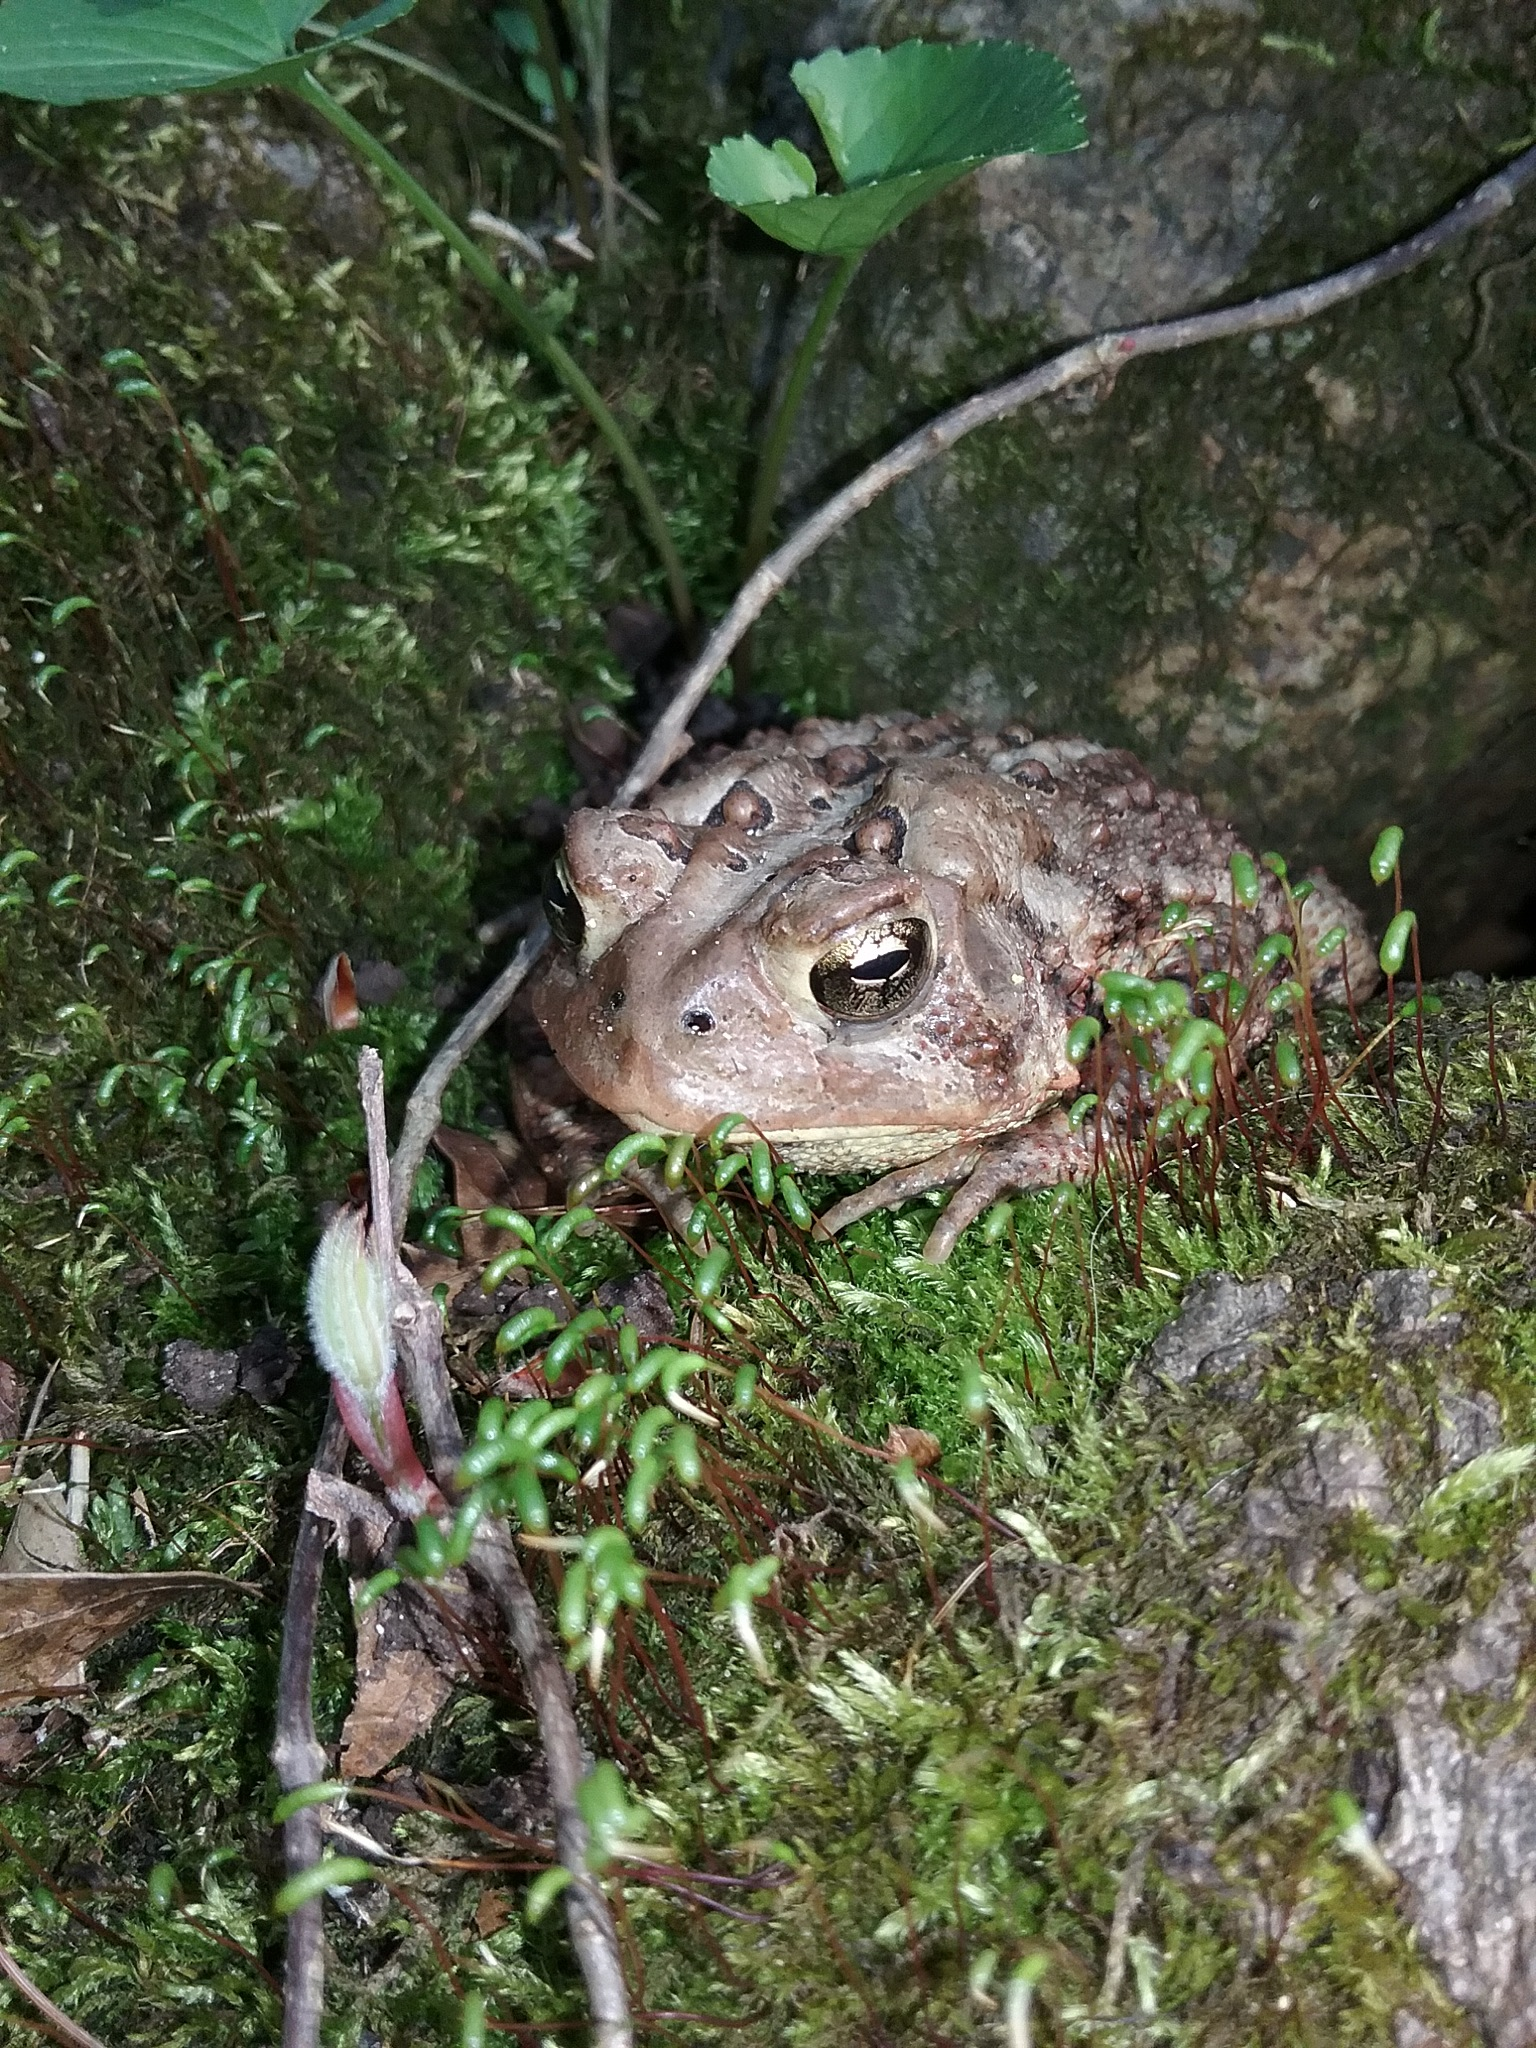 Toad by Anna Bailey